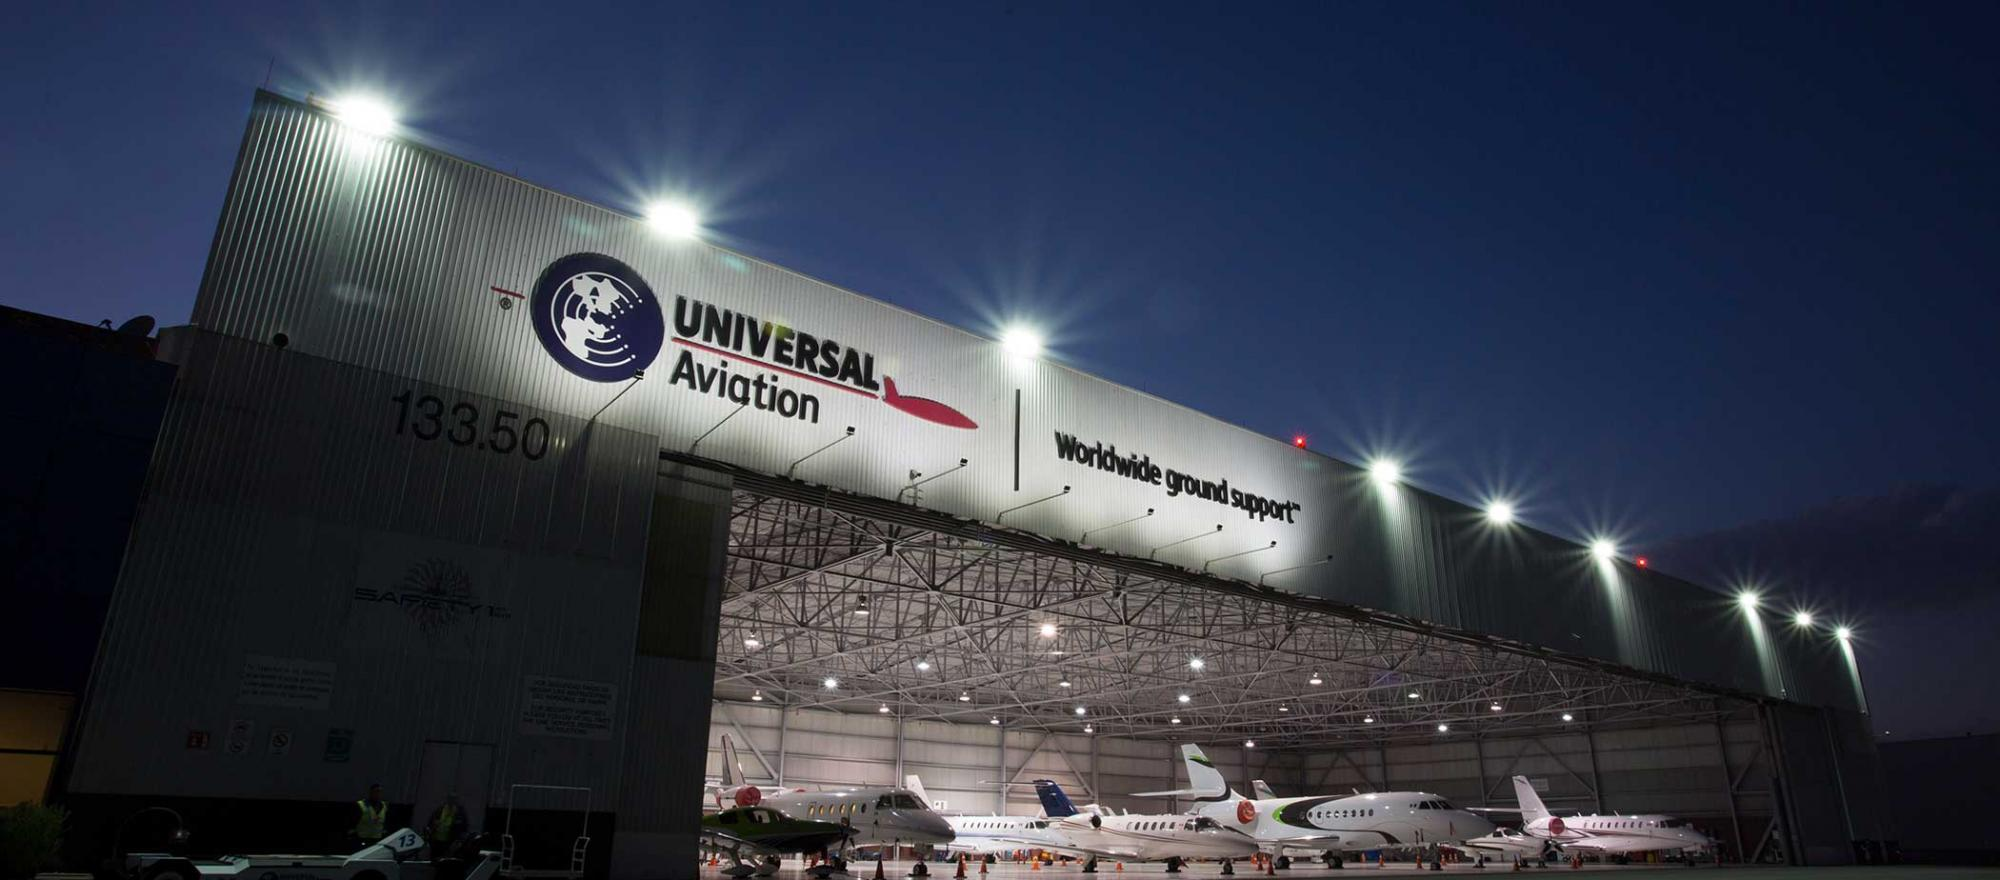 Universal Weather and Aviation